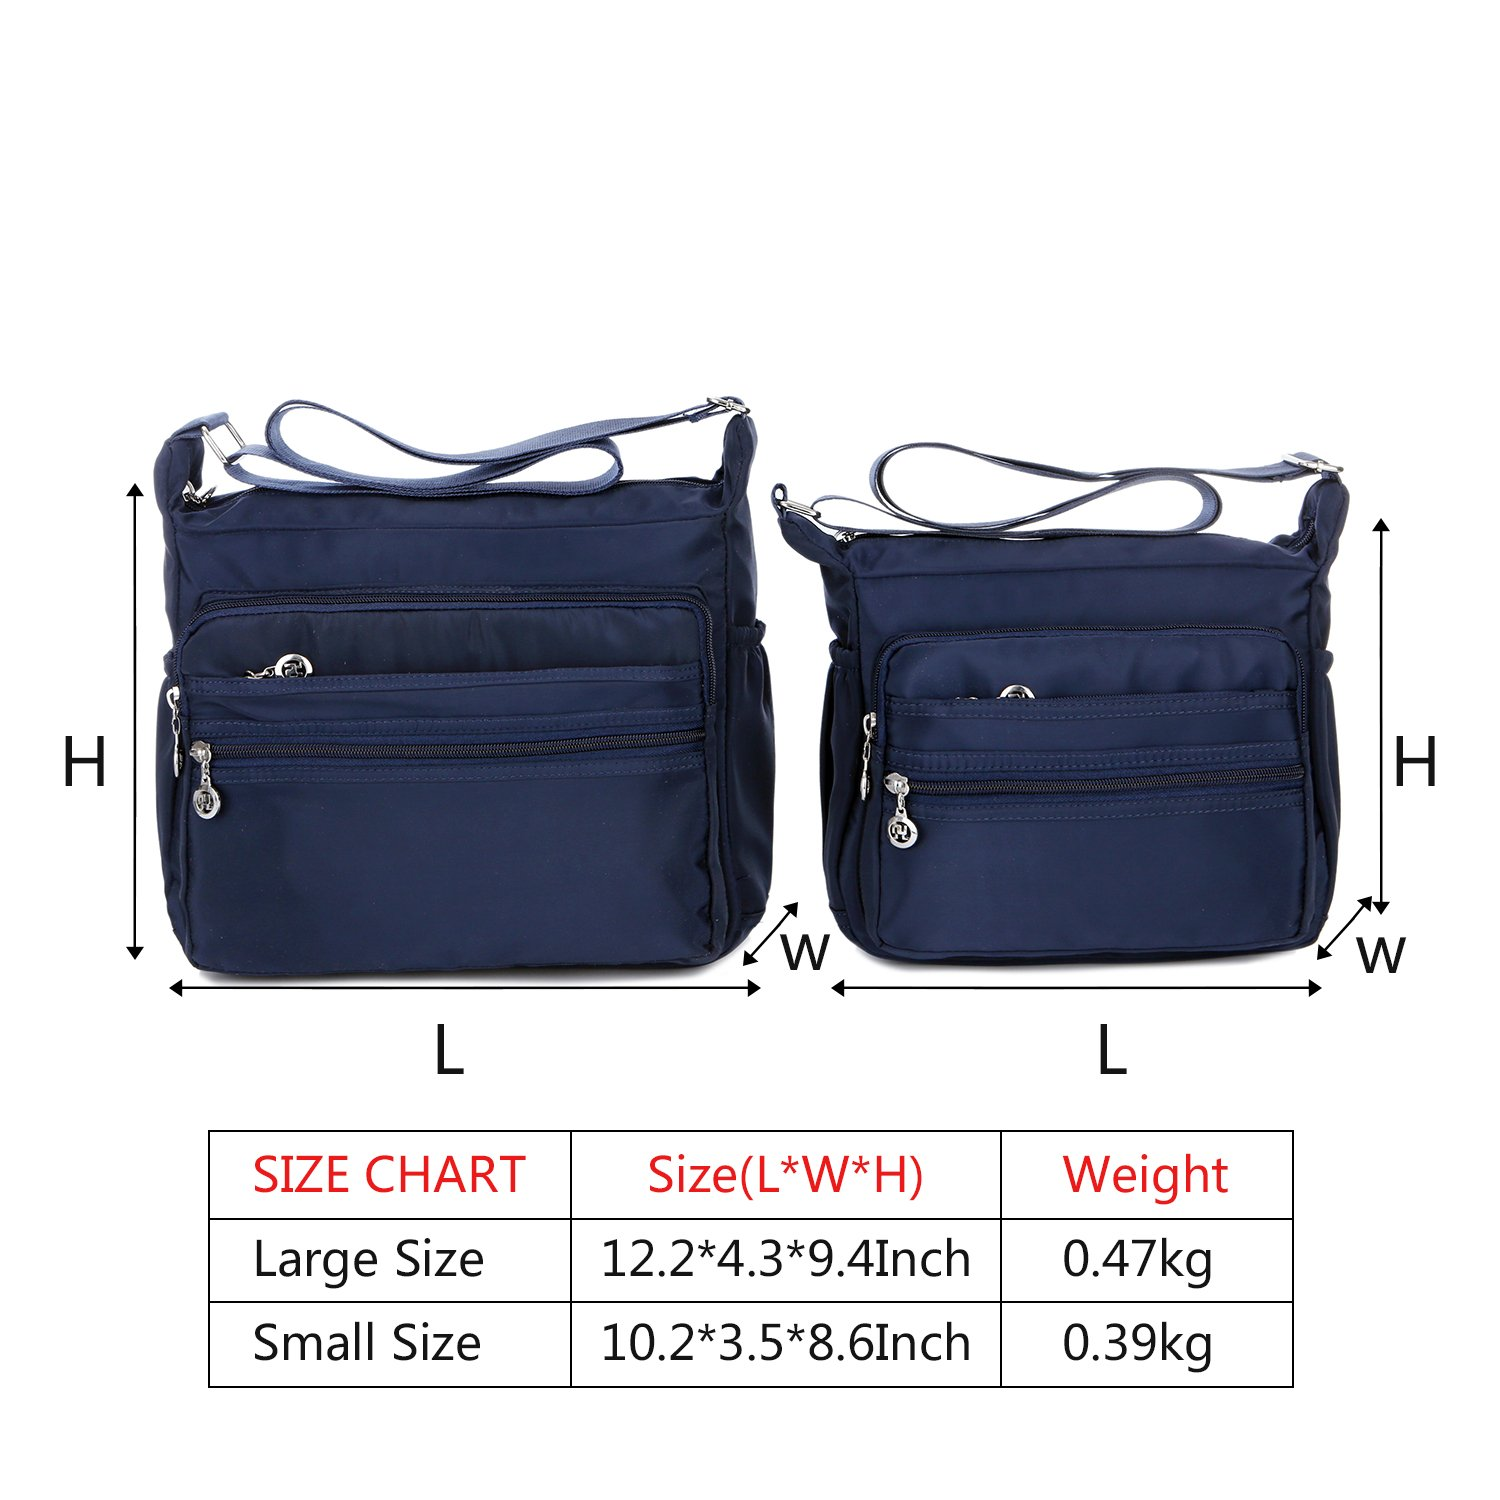 Crossbody Bag for Women Waterproof Shoulder Bag Messenger Bag Casual Canvas Purse Handbag (Small, Navy Blue) by NOTAG (Image #2)